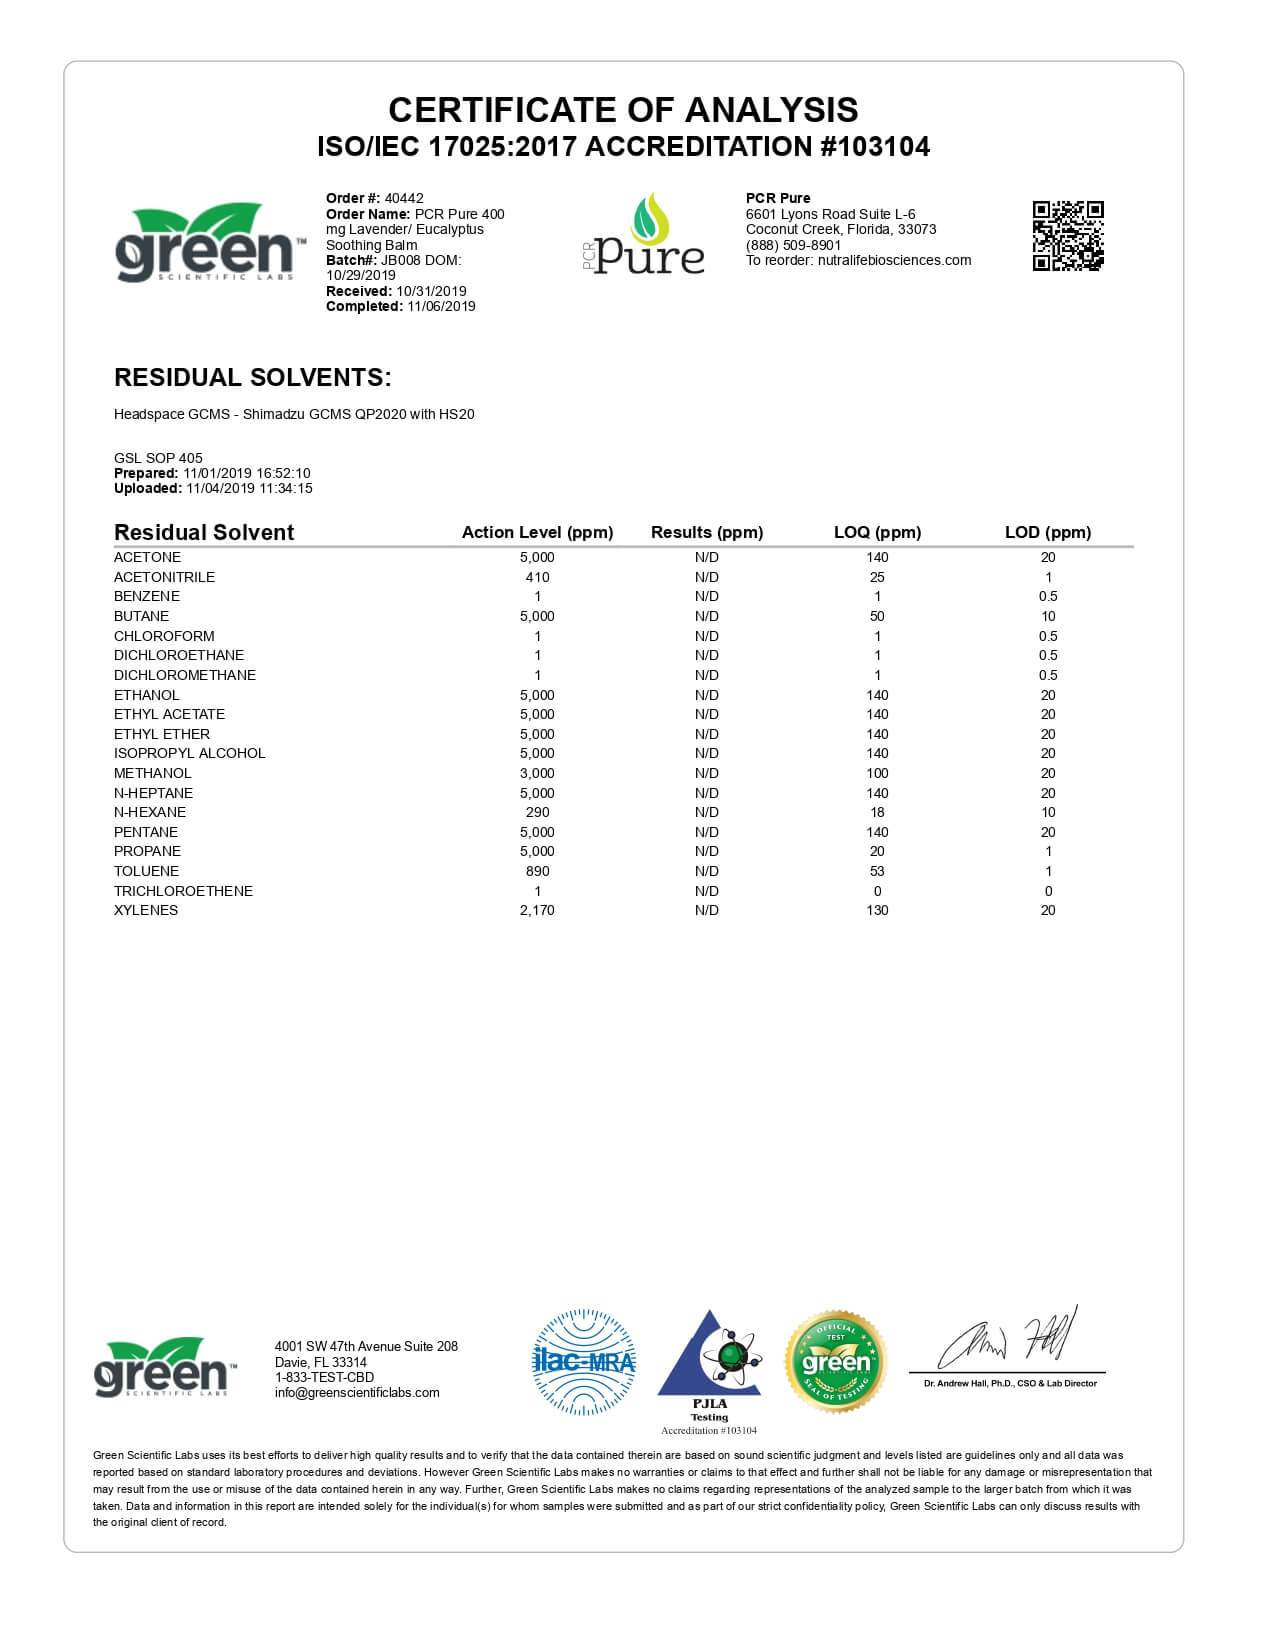 PCR Pure CBD Topical Lavender & Eycalyptus Full Spectrum Soothing Balm Lab Report